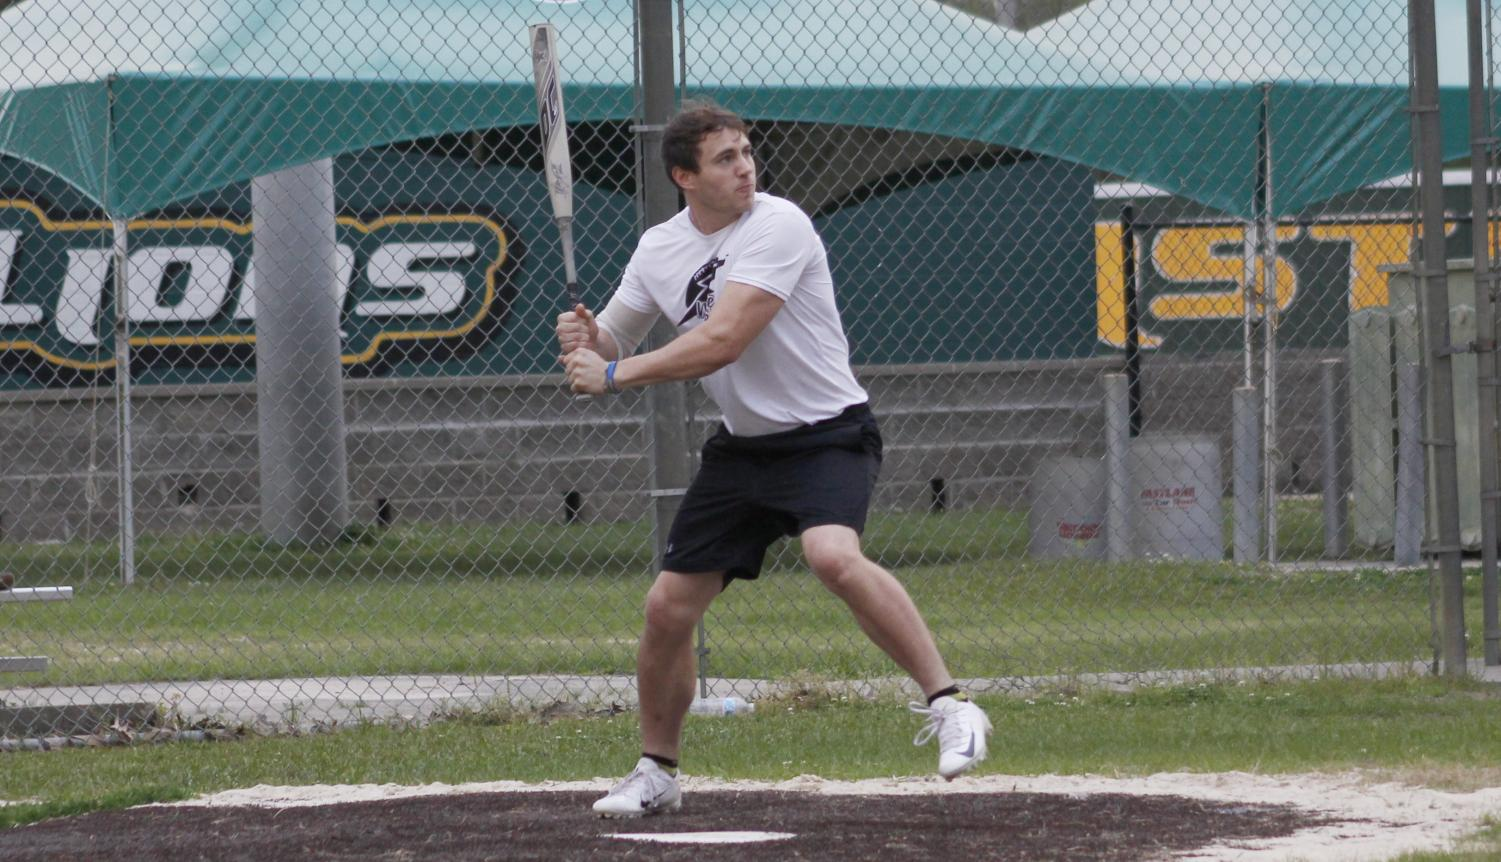 A player from White Lightning gets ready to hit the ball. Intramural sports offer several options for students who want to play the game.